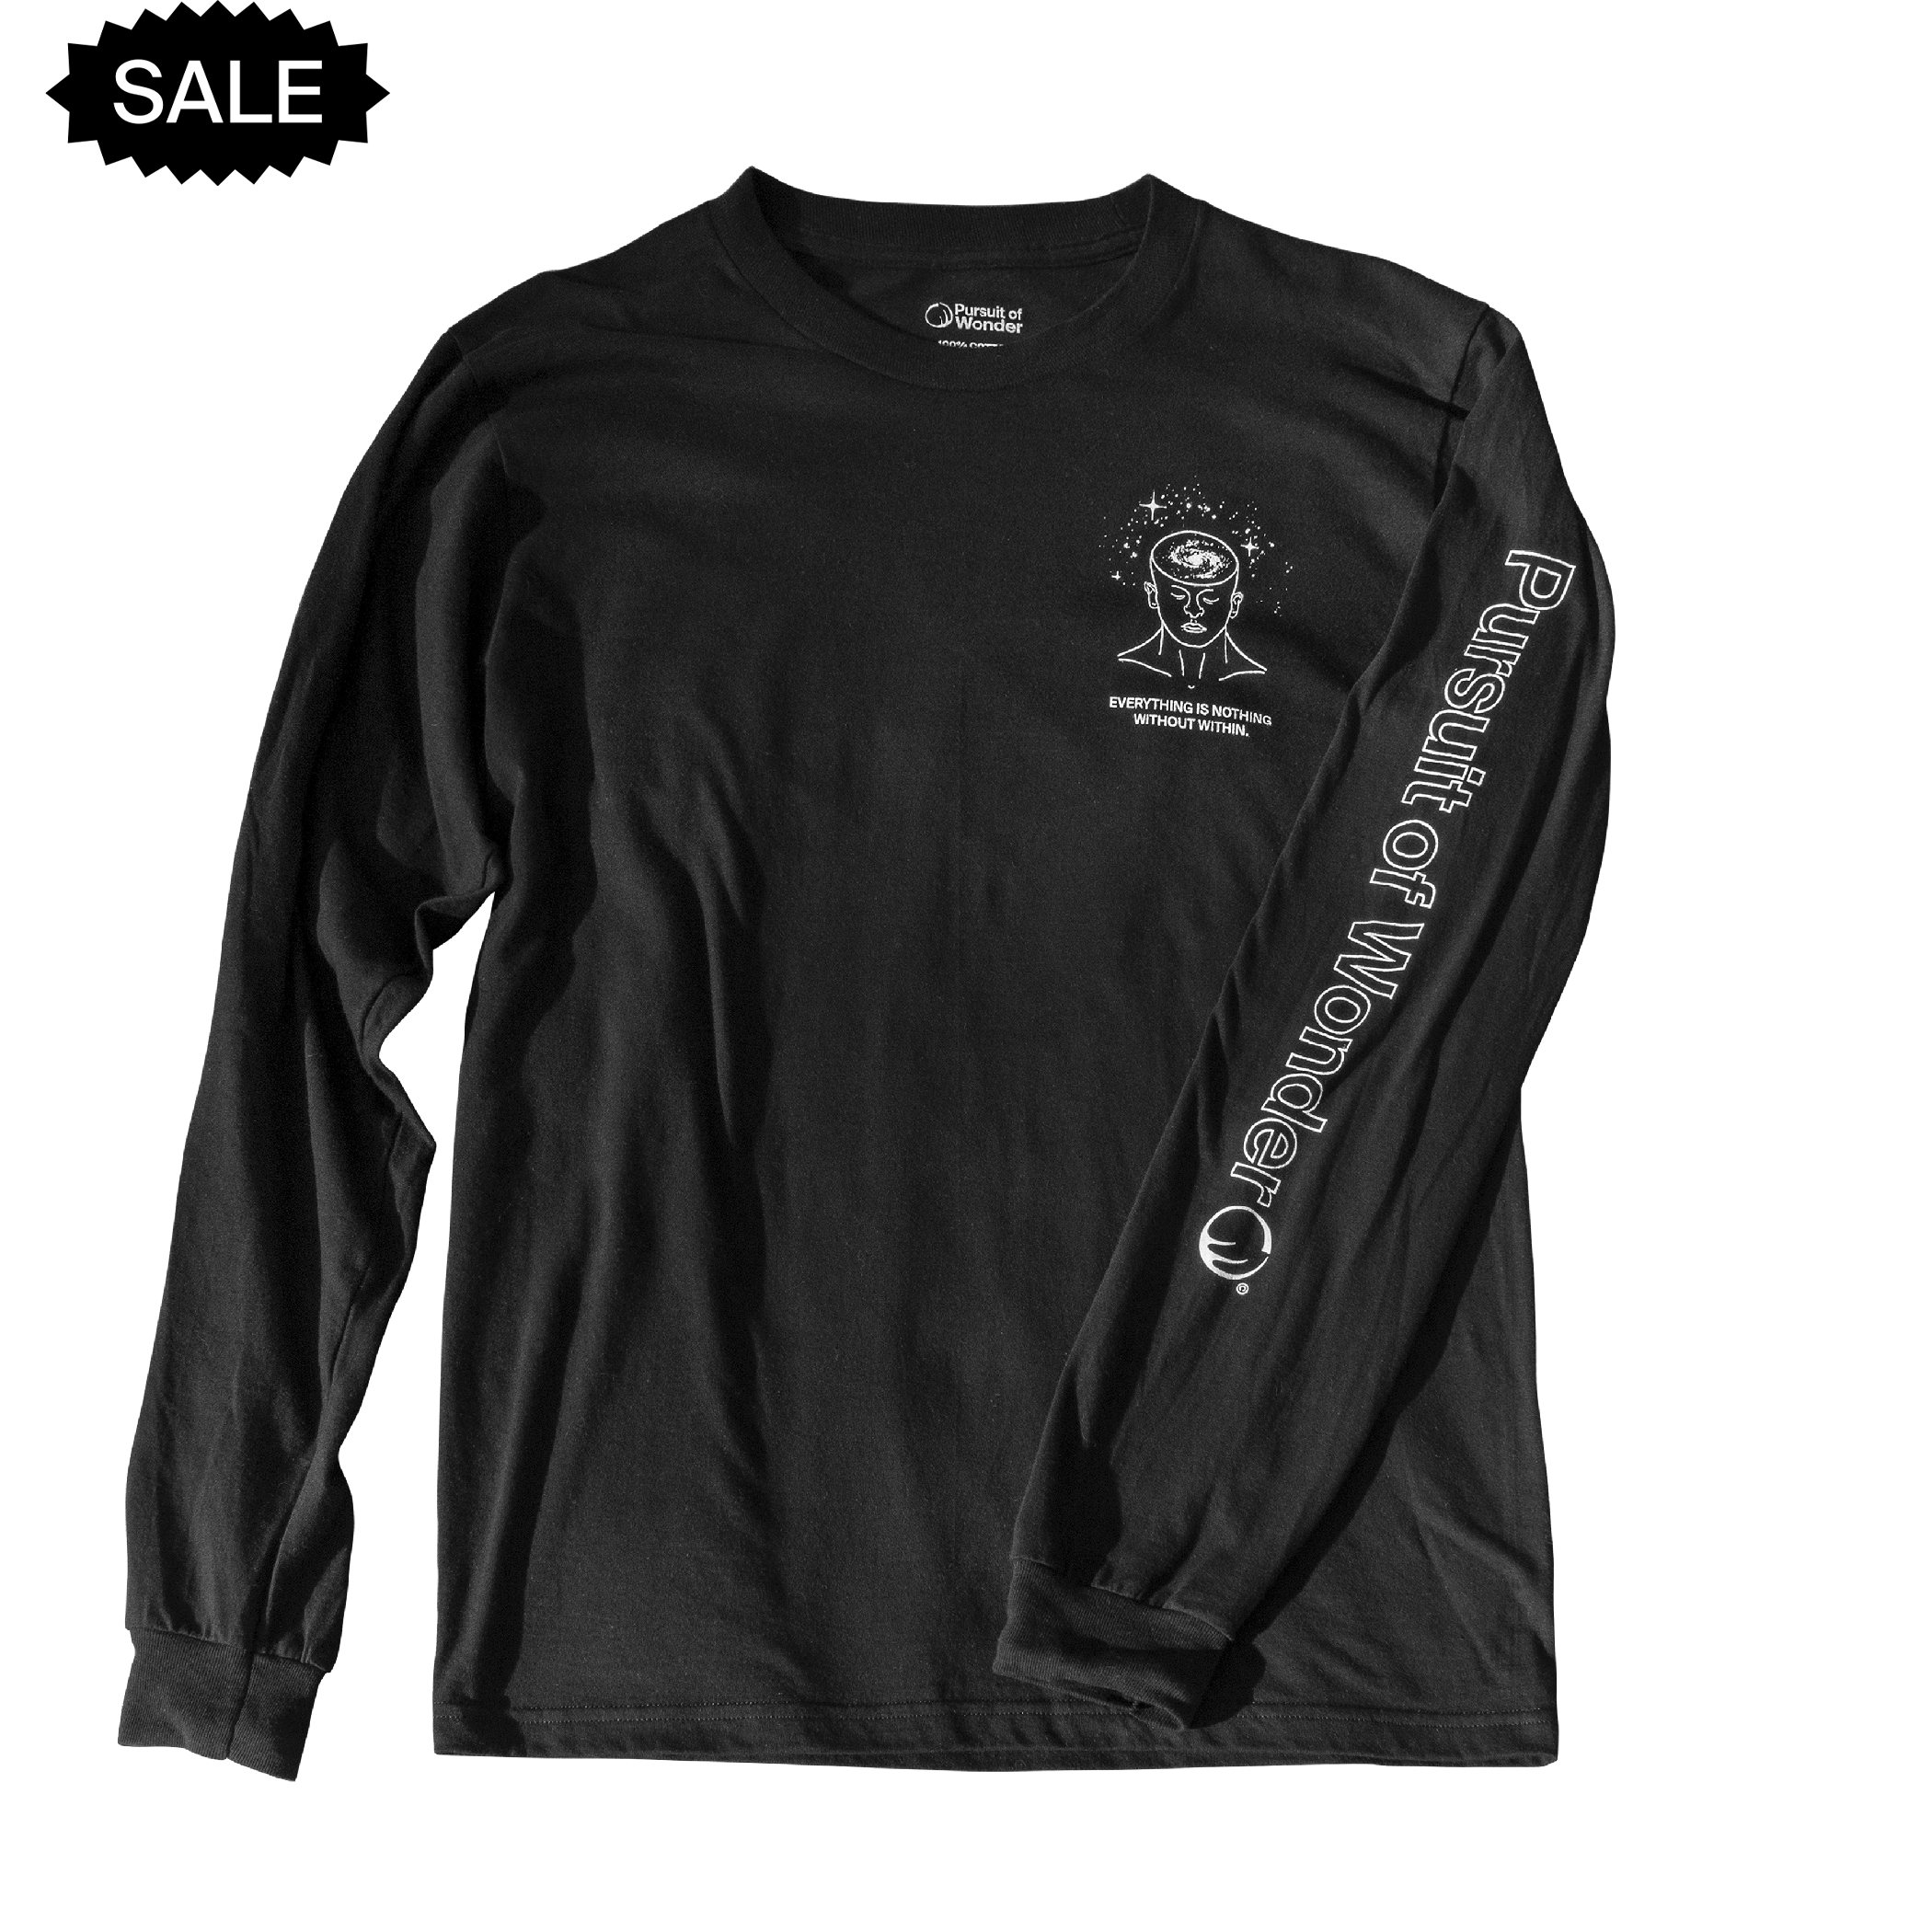 A comfortable, black long sleeve shirt featuring an original Pursuit of Wonder drawing and quote as well as a full left arm logo graphic.